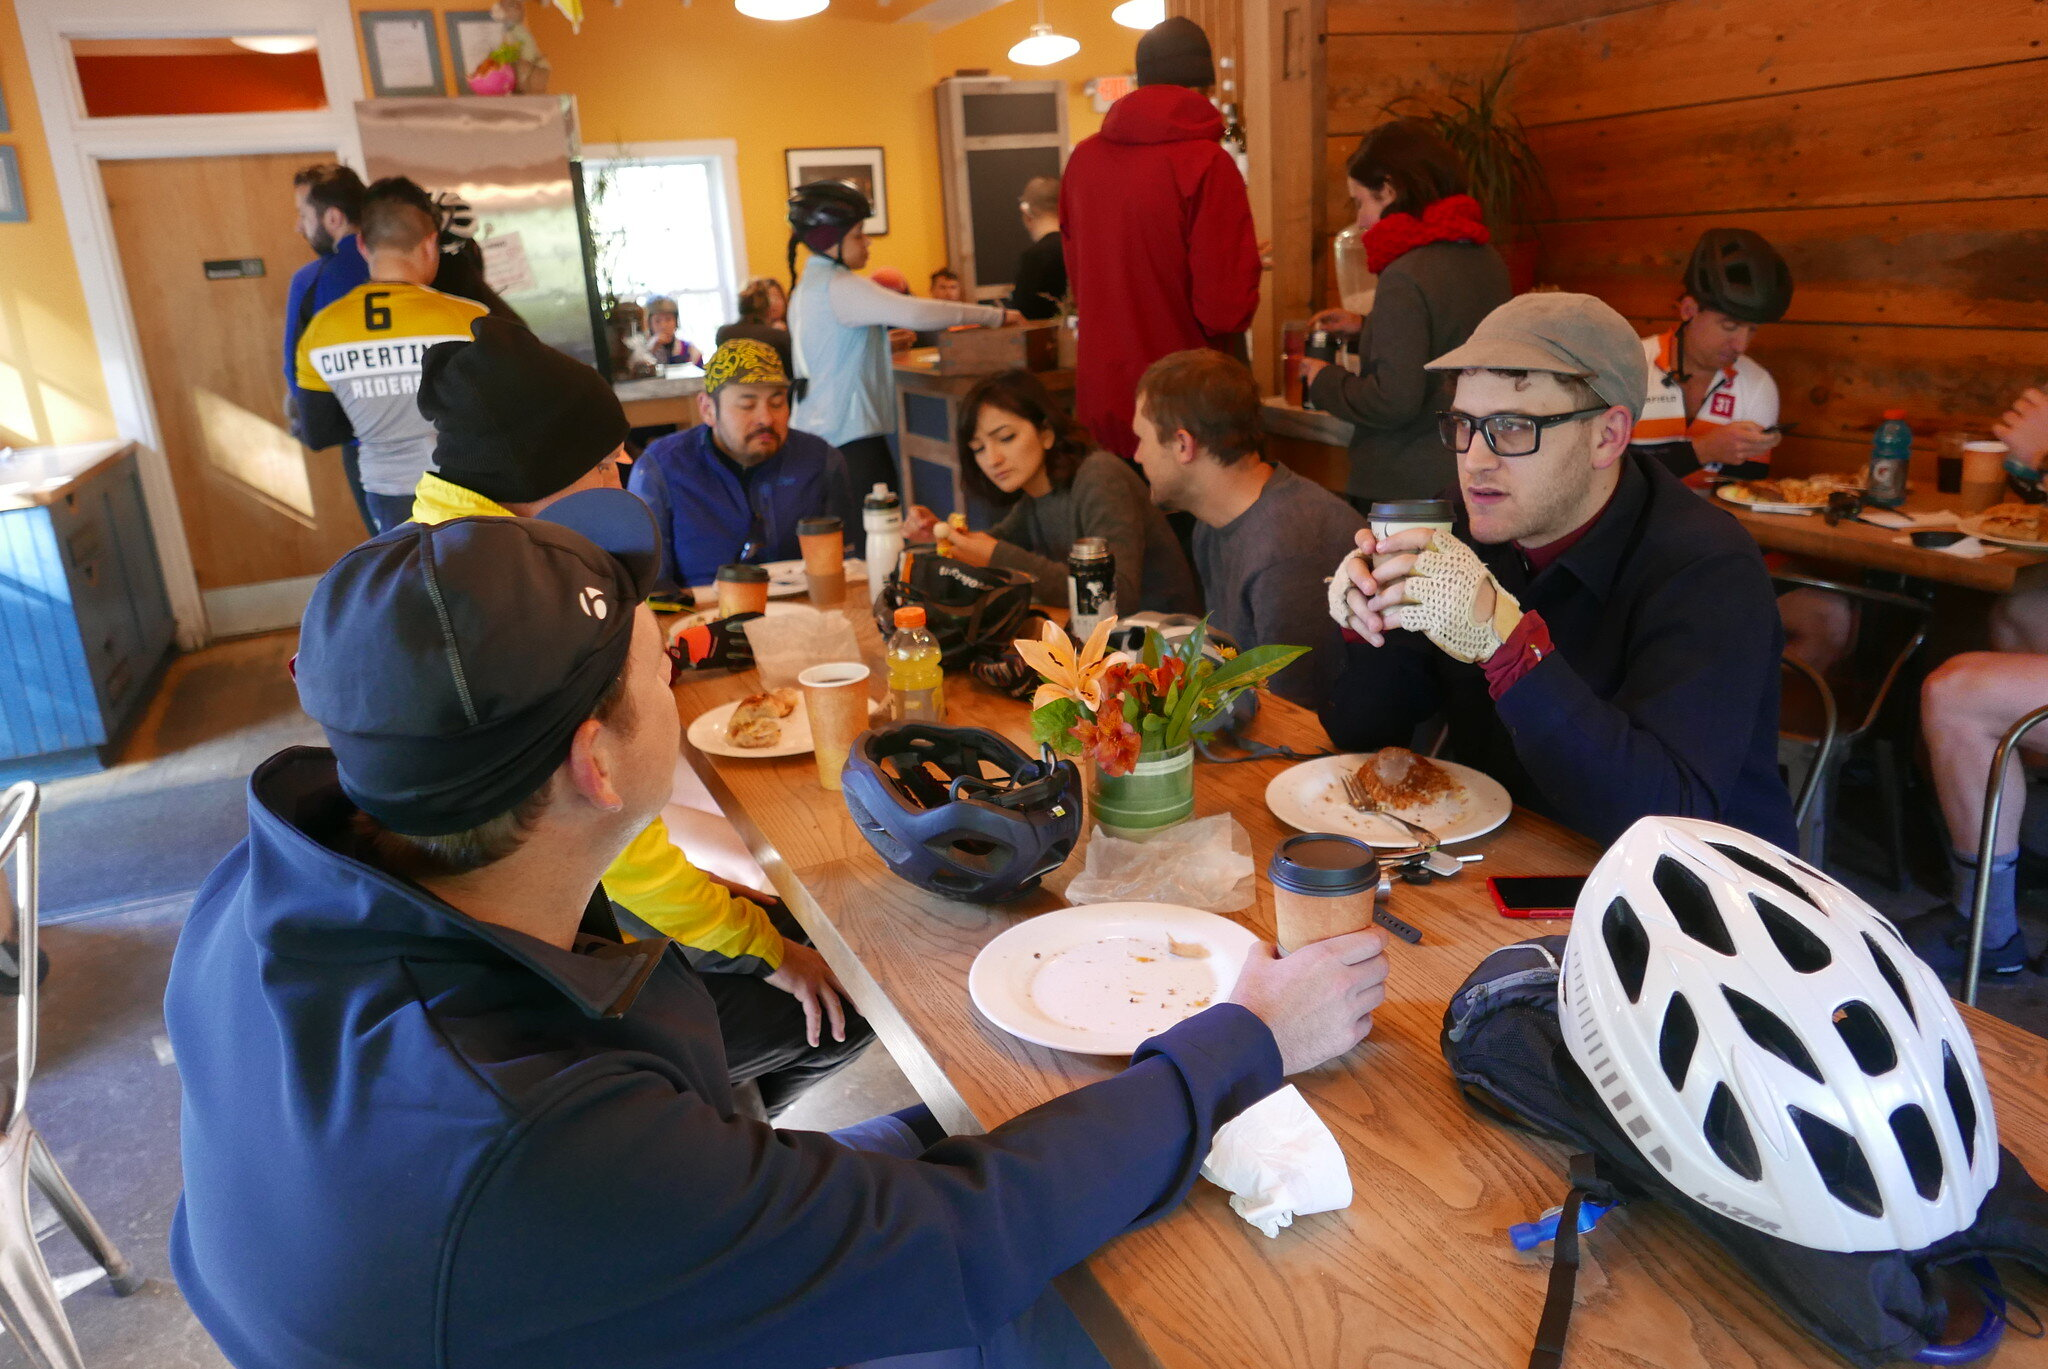 Food pitstop at mile 24 at the 9W Market